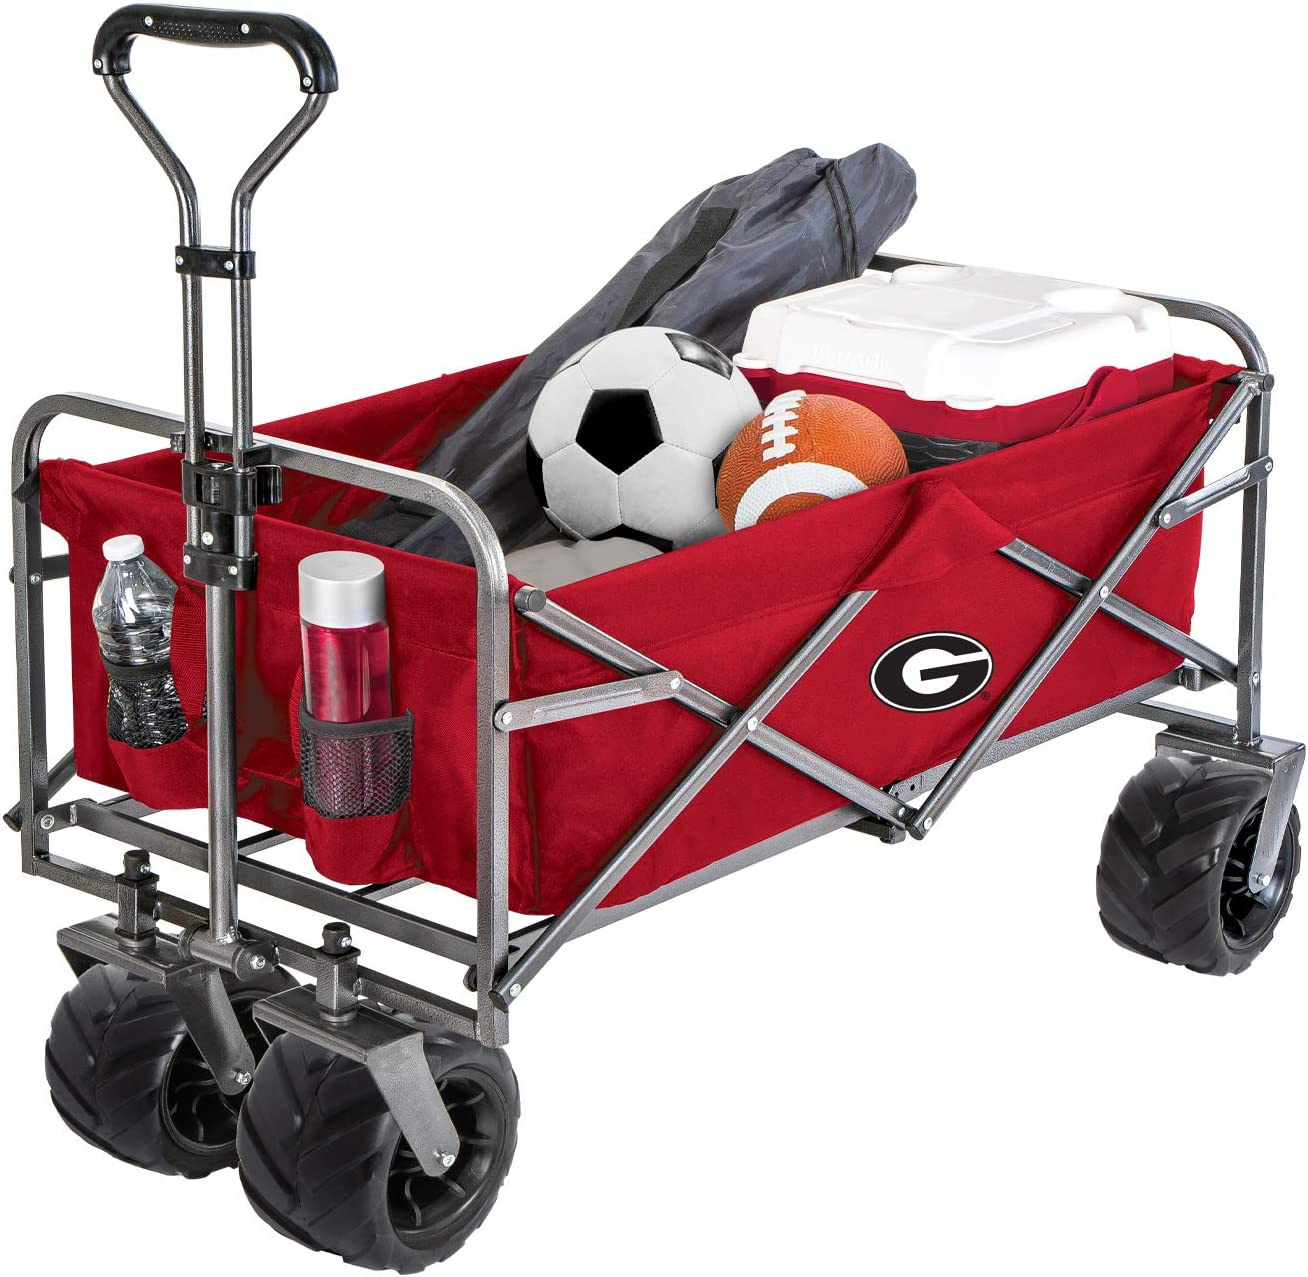 Smart Design Collegiate Heavy-Duty Utility Collapsible Wagon Beach Cart – 20.15 x 35.5 x 22.5 inch – University of Georgia Team Design – Officially Licensed Logo – Black Red Colors – Bulldogs